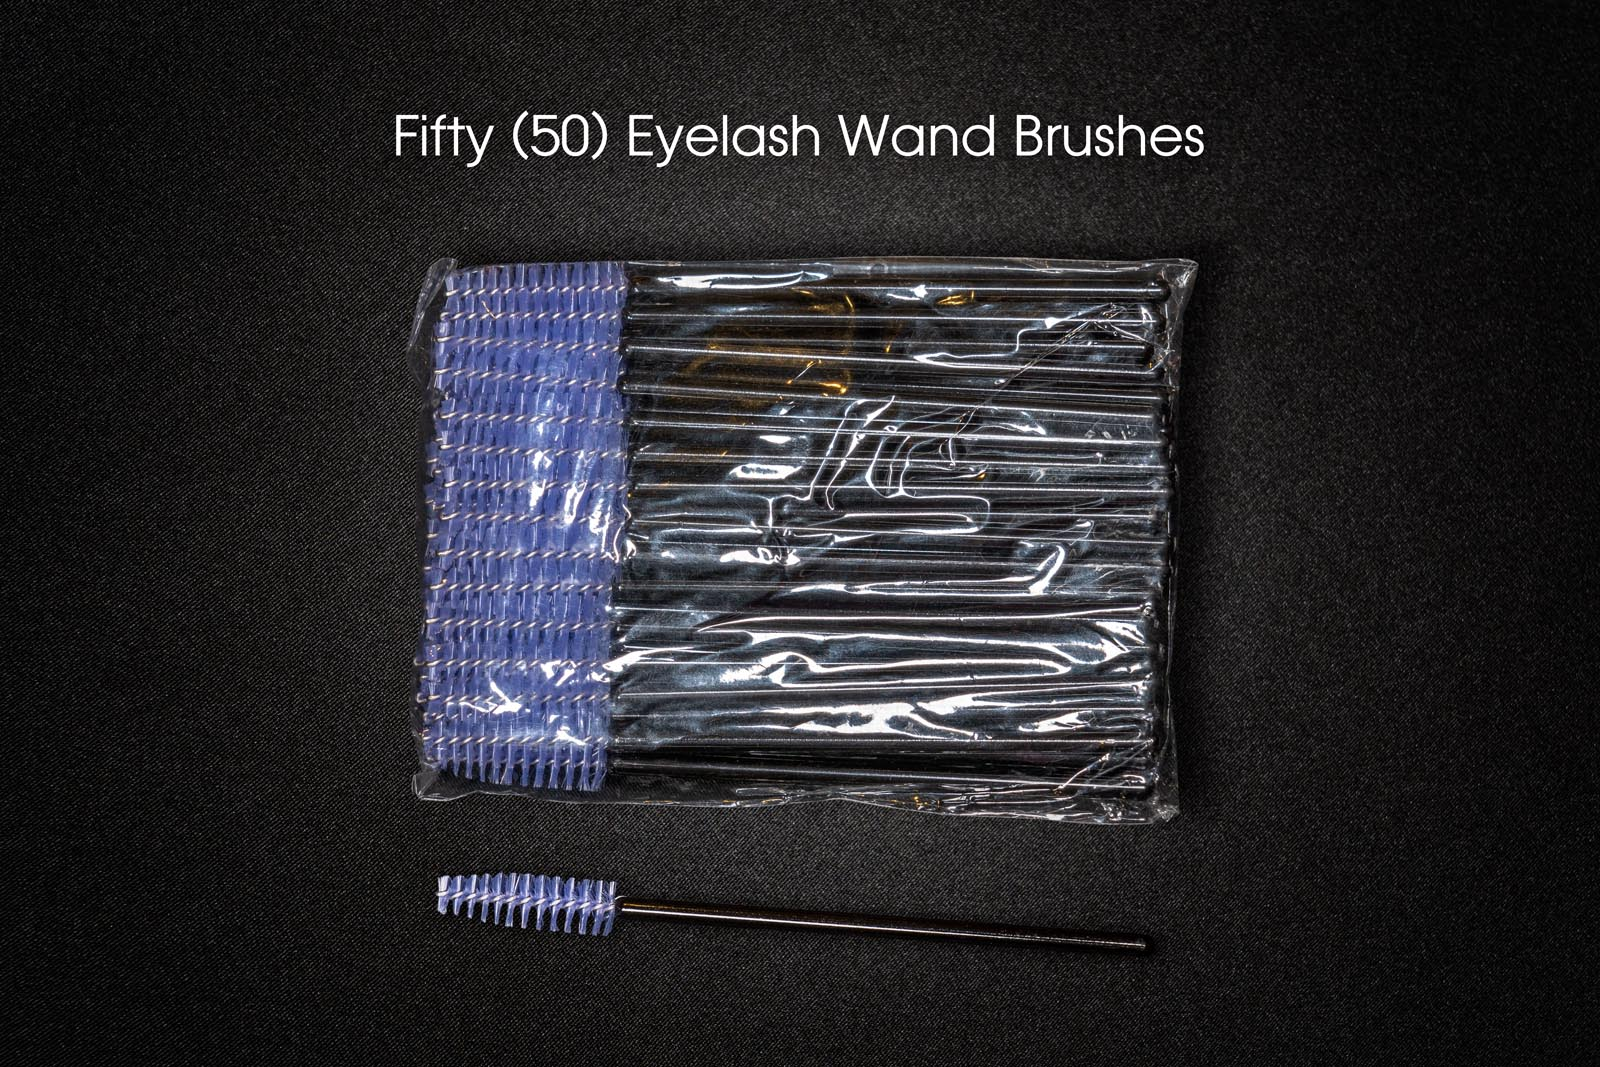 15 Eyelash Wands Brushes.jpg